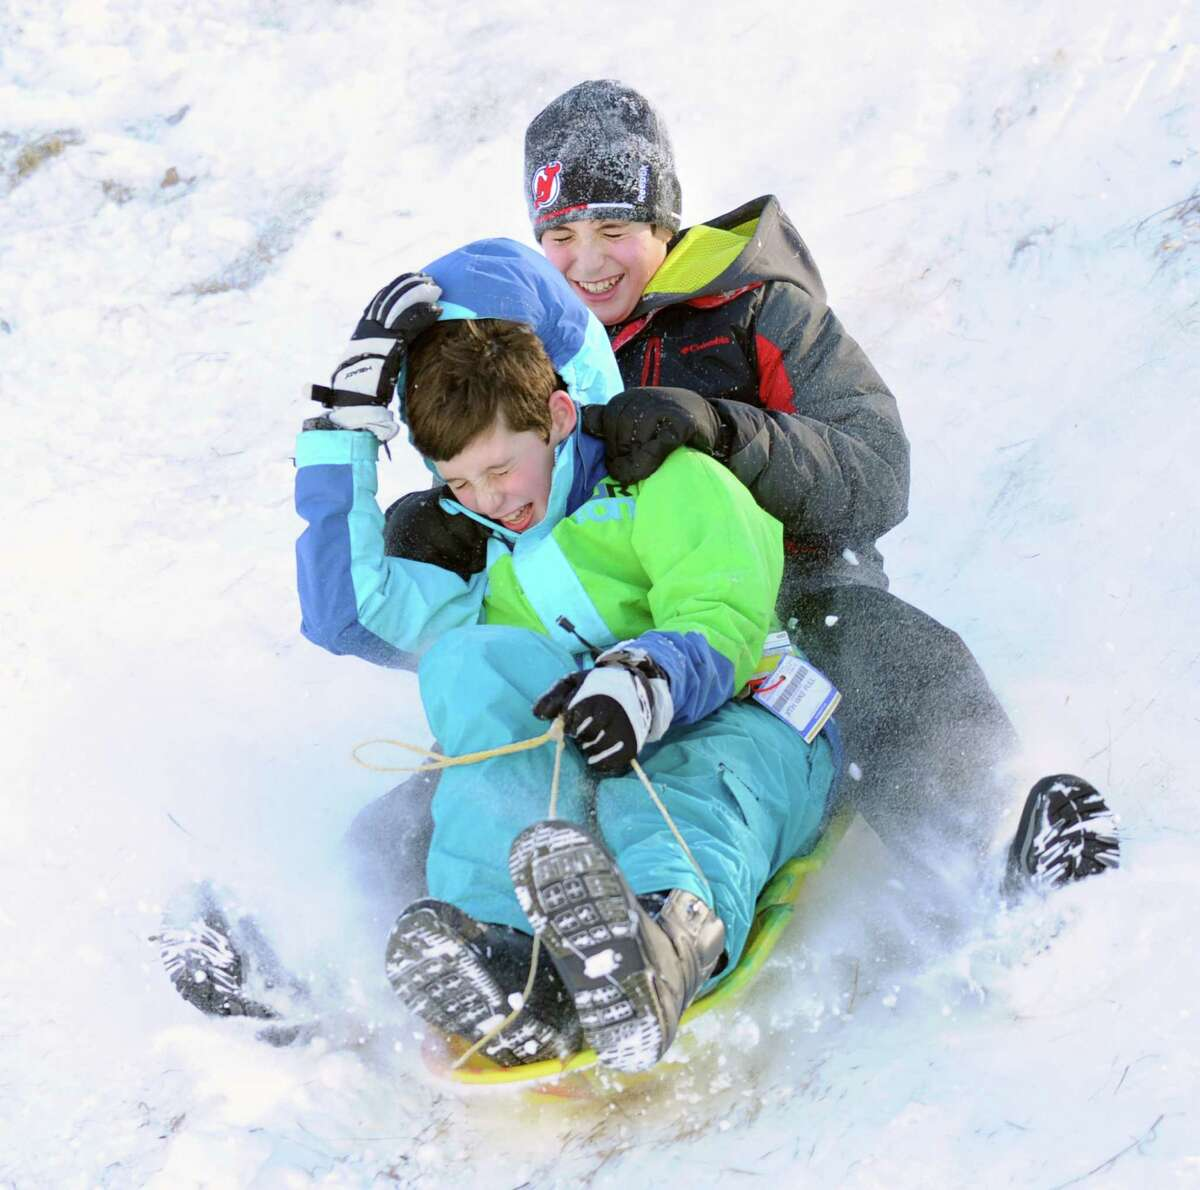 At front, Jack Capizzi, and Ben Presley, both 11, both of Greenwich, sled ride at the Western Greeenwich Civic Center, Greenwich, Conn., Friday afternnon, Jan. 3, 2014, during the aftermath of the snow storm that hit the area.